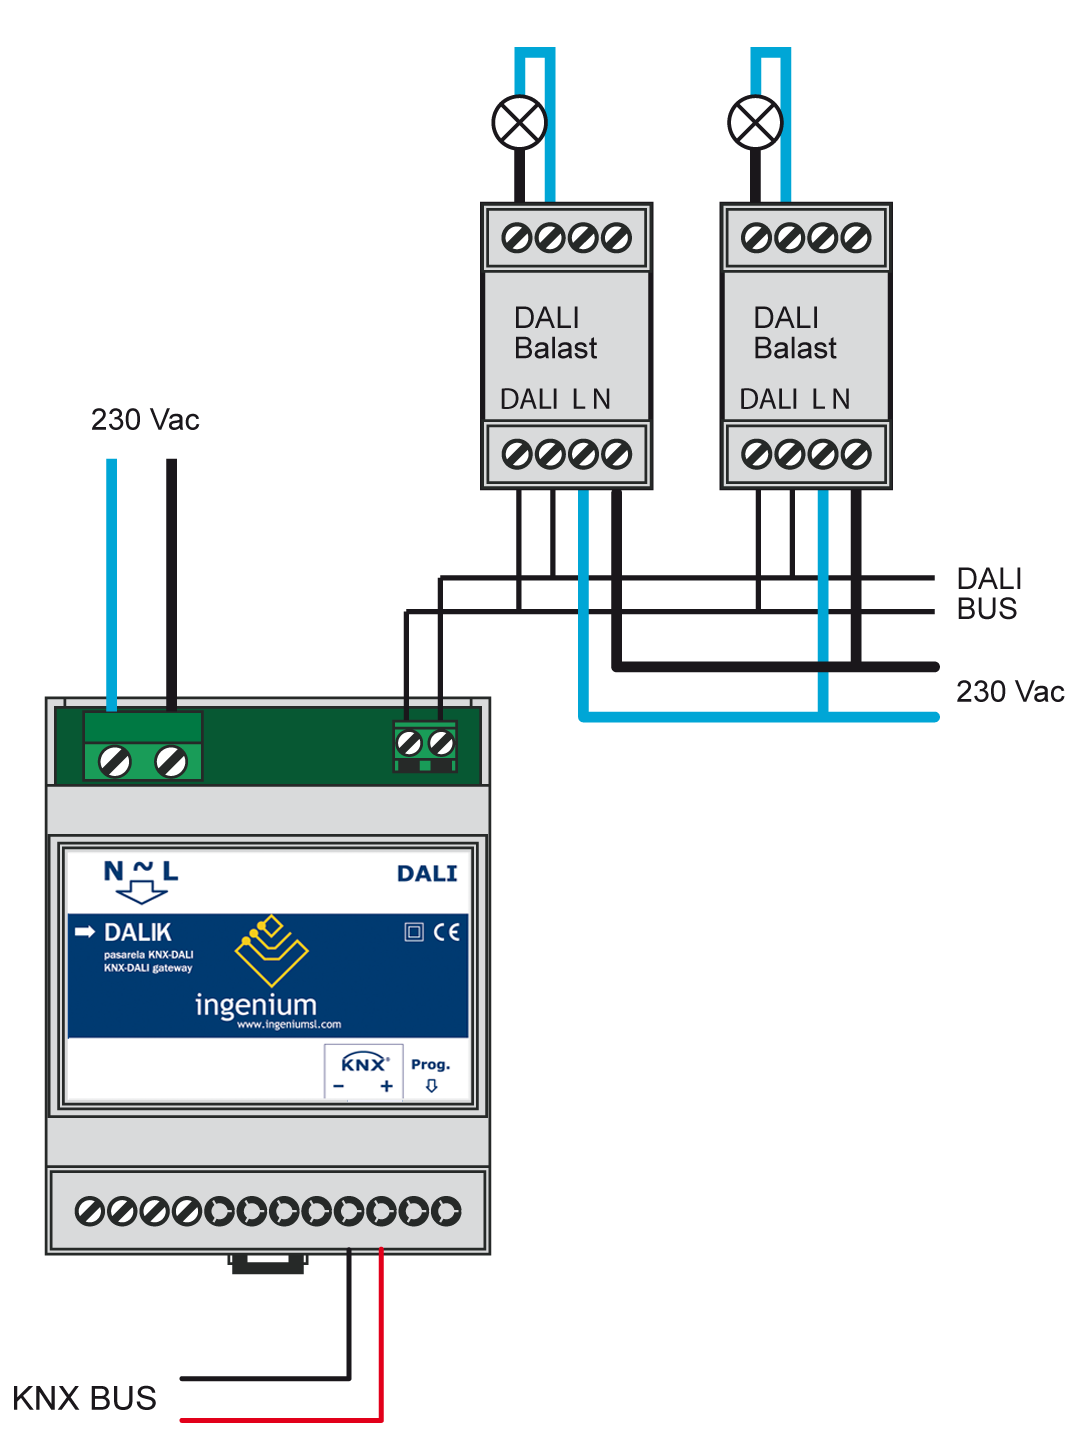 Dalik Programming Manual Gateway Knx Dali V143 Technical Support Wiring Diagram 4 Installation Feed Low Voltage Lines Bus And Inputs In Separate Ducting To